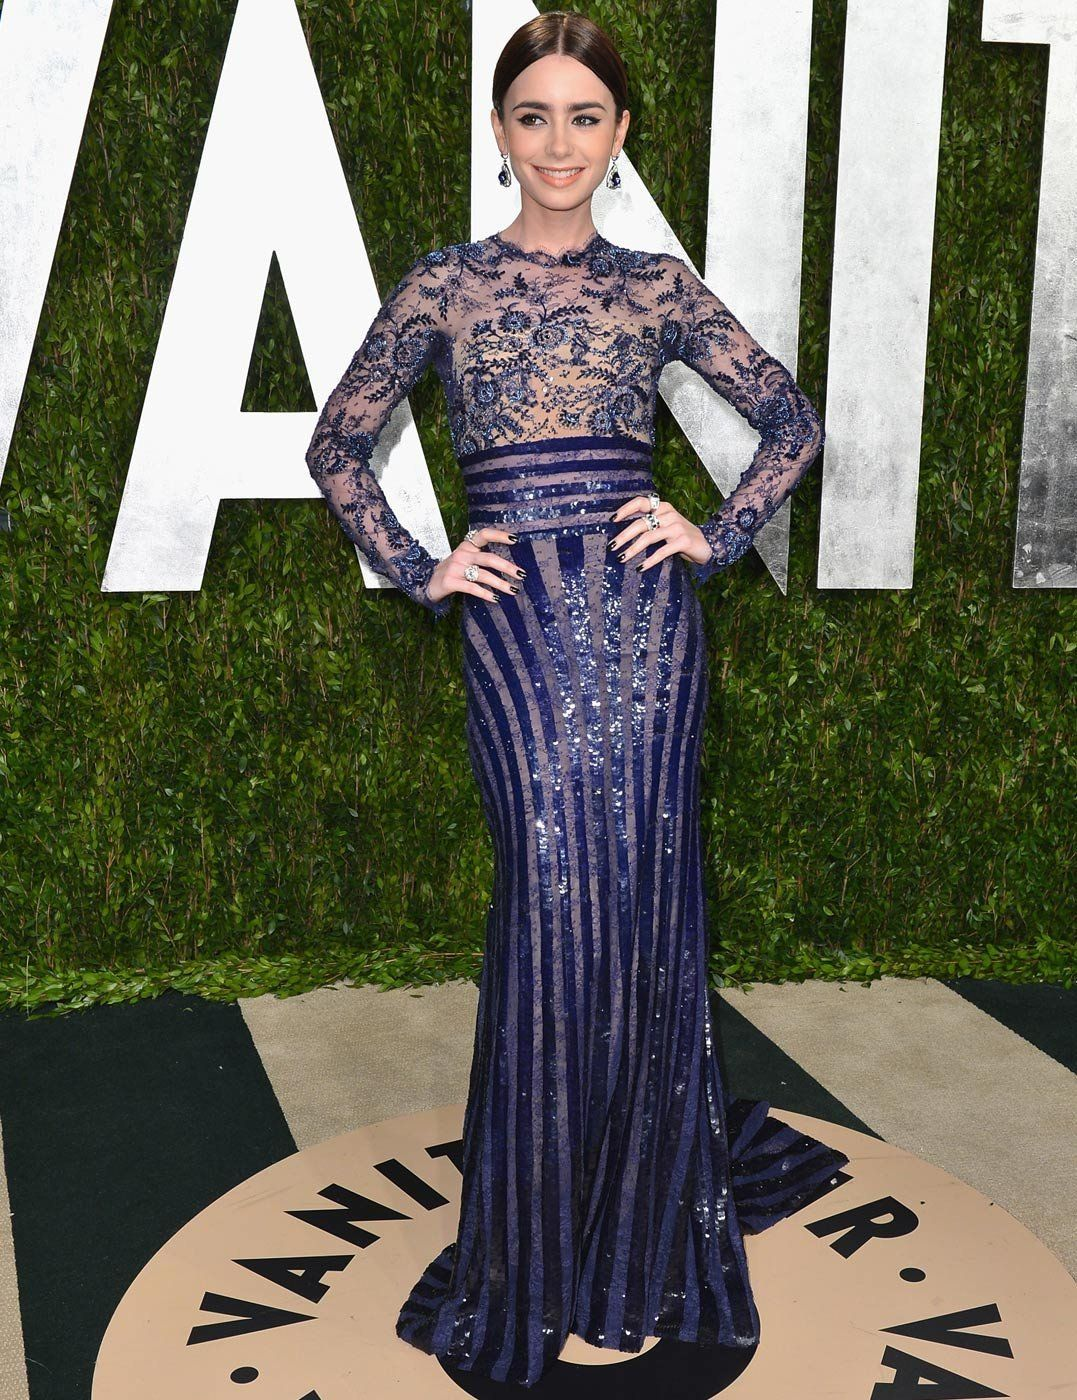 Lily Collins in Zuhair Murad, Vanity Fair Oscars Party Red Carpet 2013